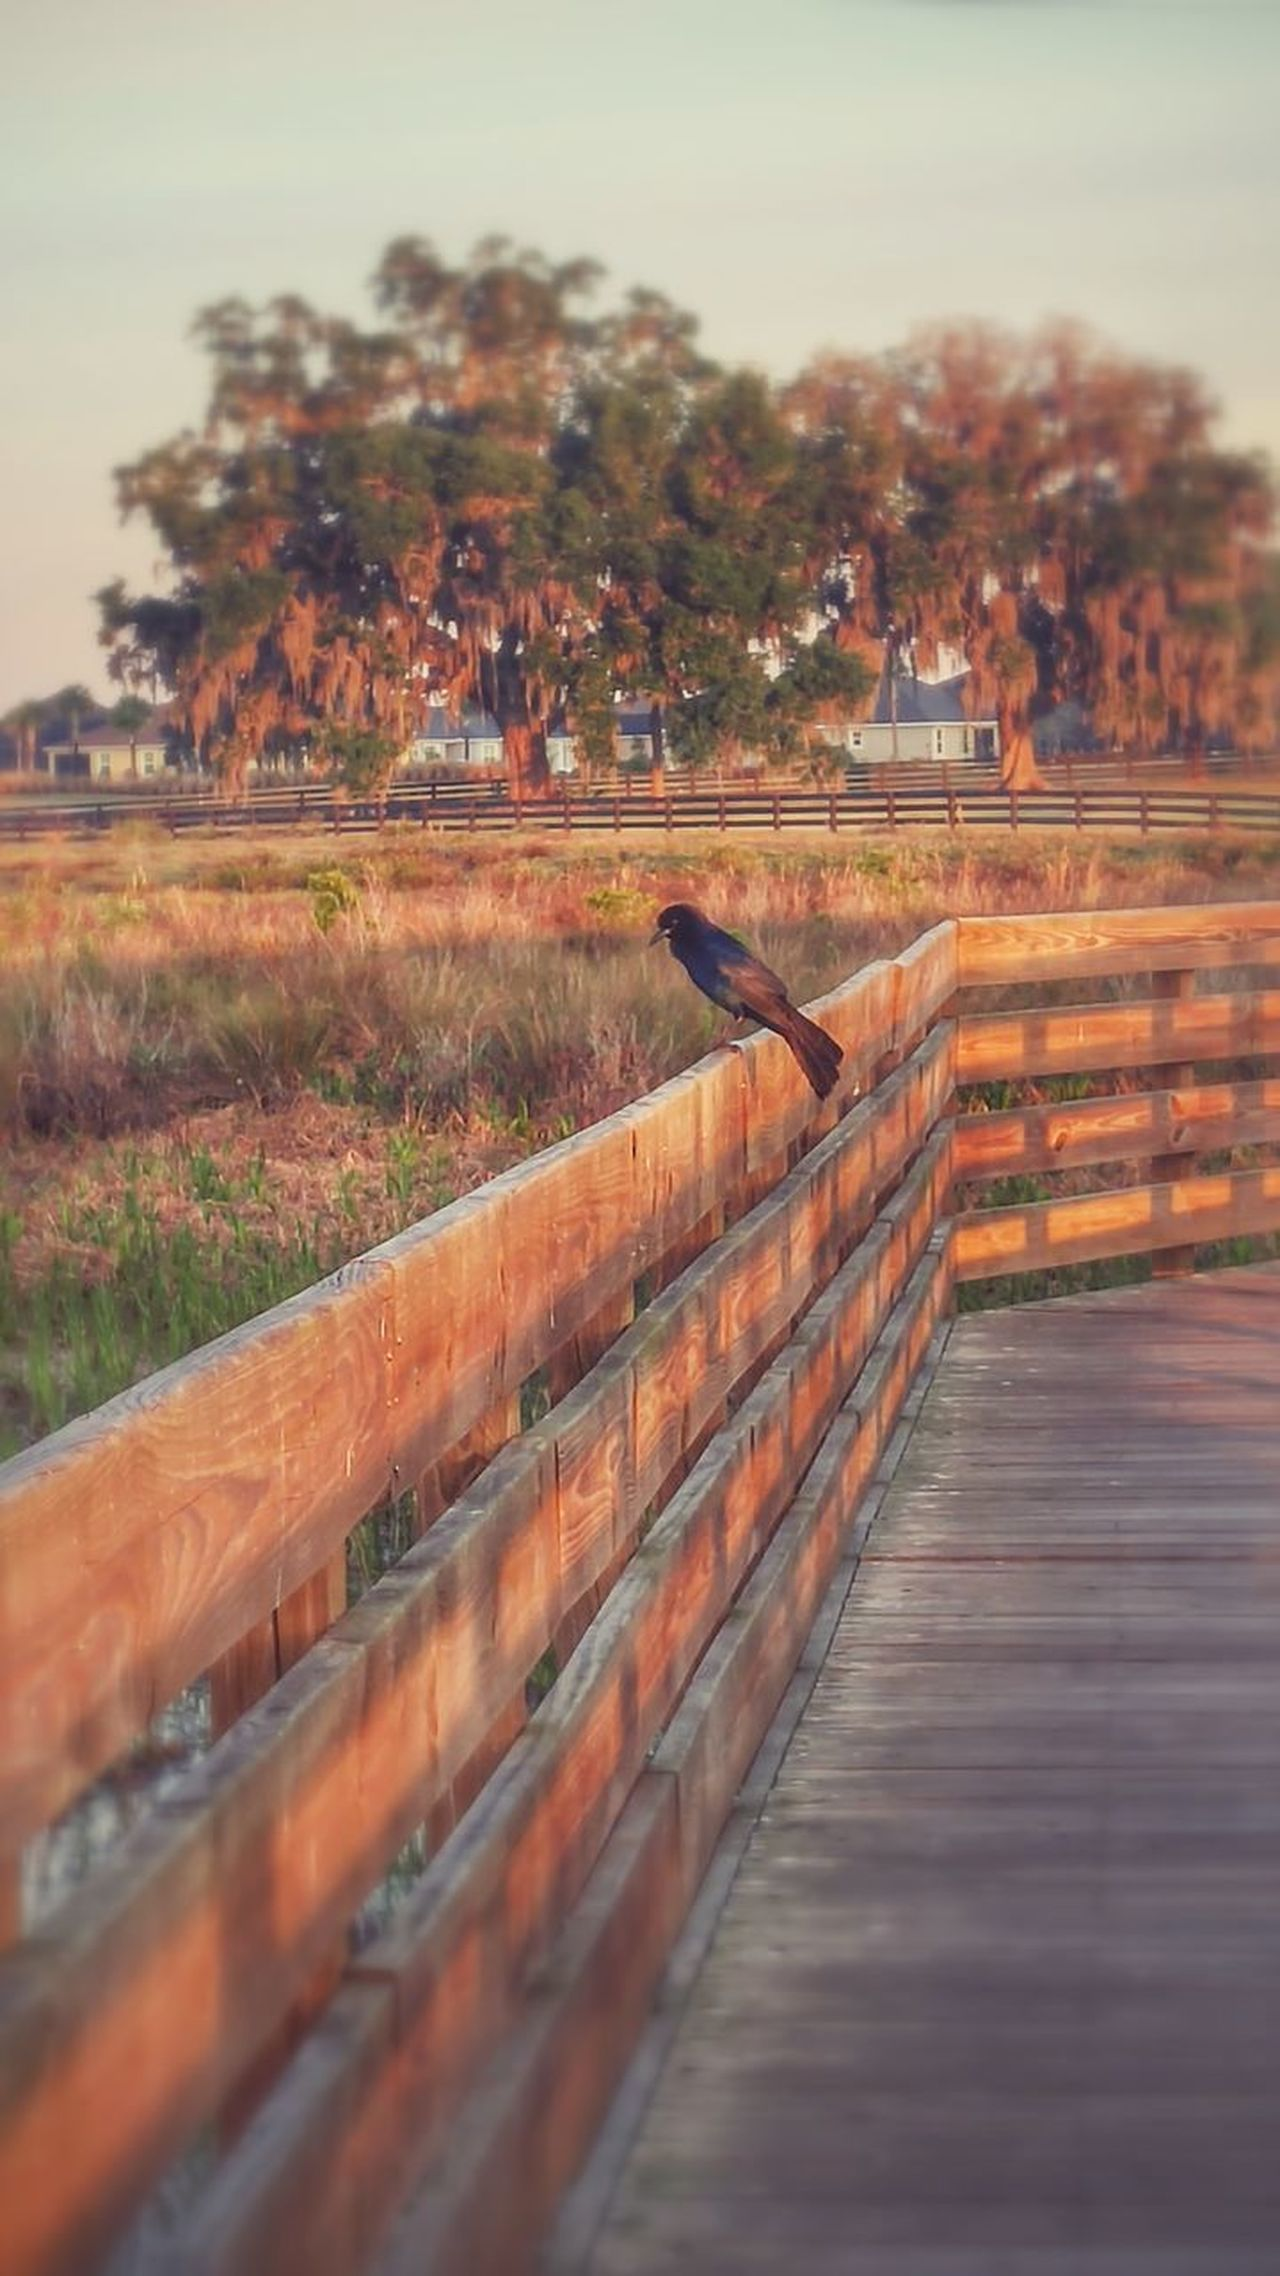 My sunrise compainion. Landscape Outdoors No People Nature Birds Lone Bird Wooden Walkway Sunrise Warm Light Black Bird Solice Florida The Villages Florida Nature Preserve Peace Messanger Blurred Background Willows Wood